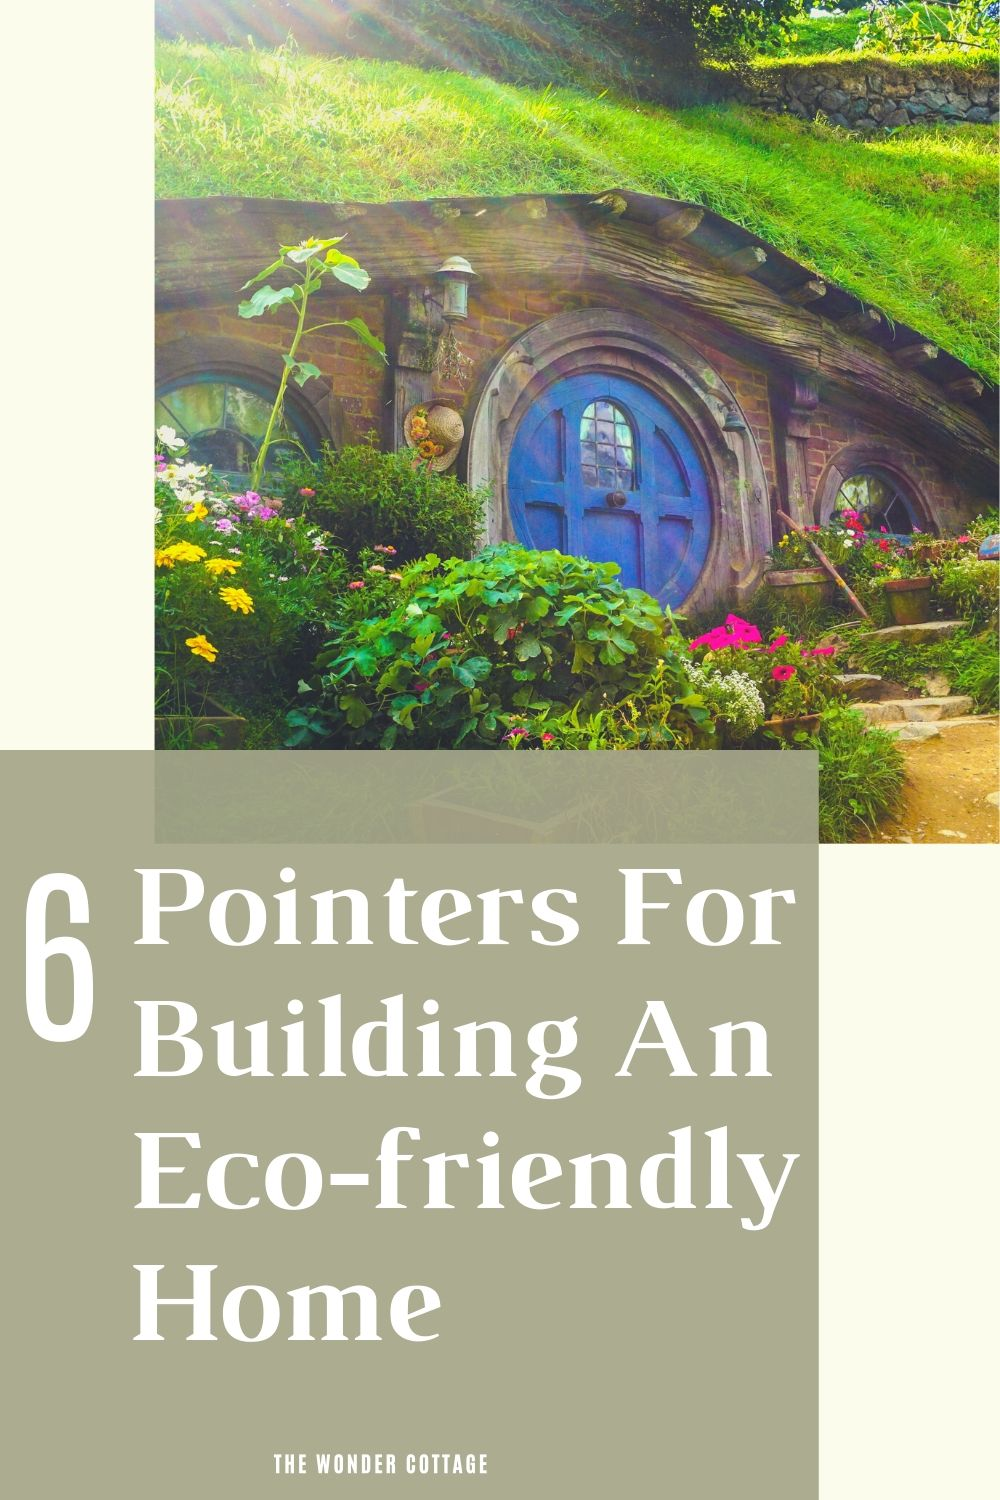 6 pointers for building an eco-friendly home